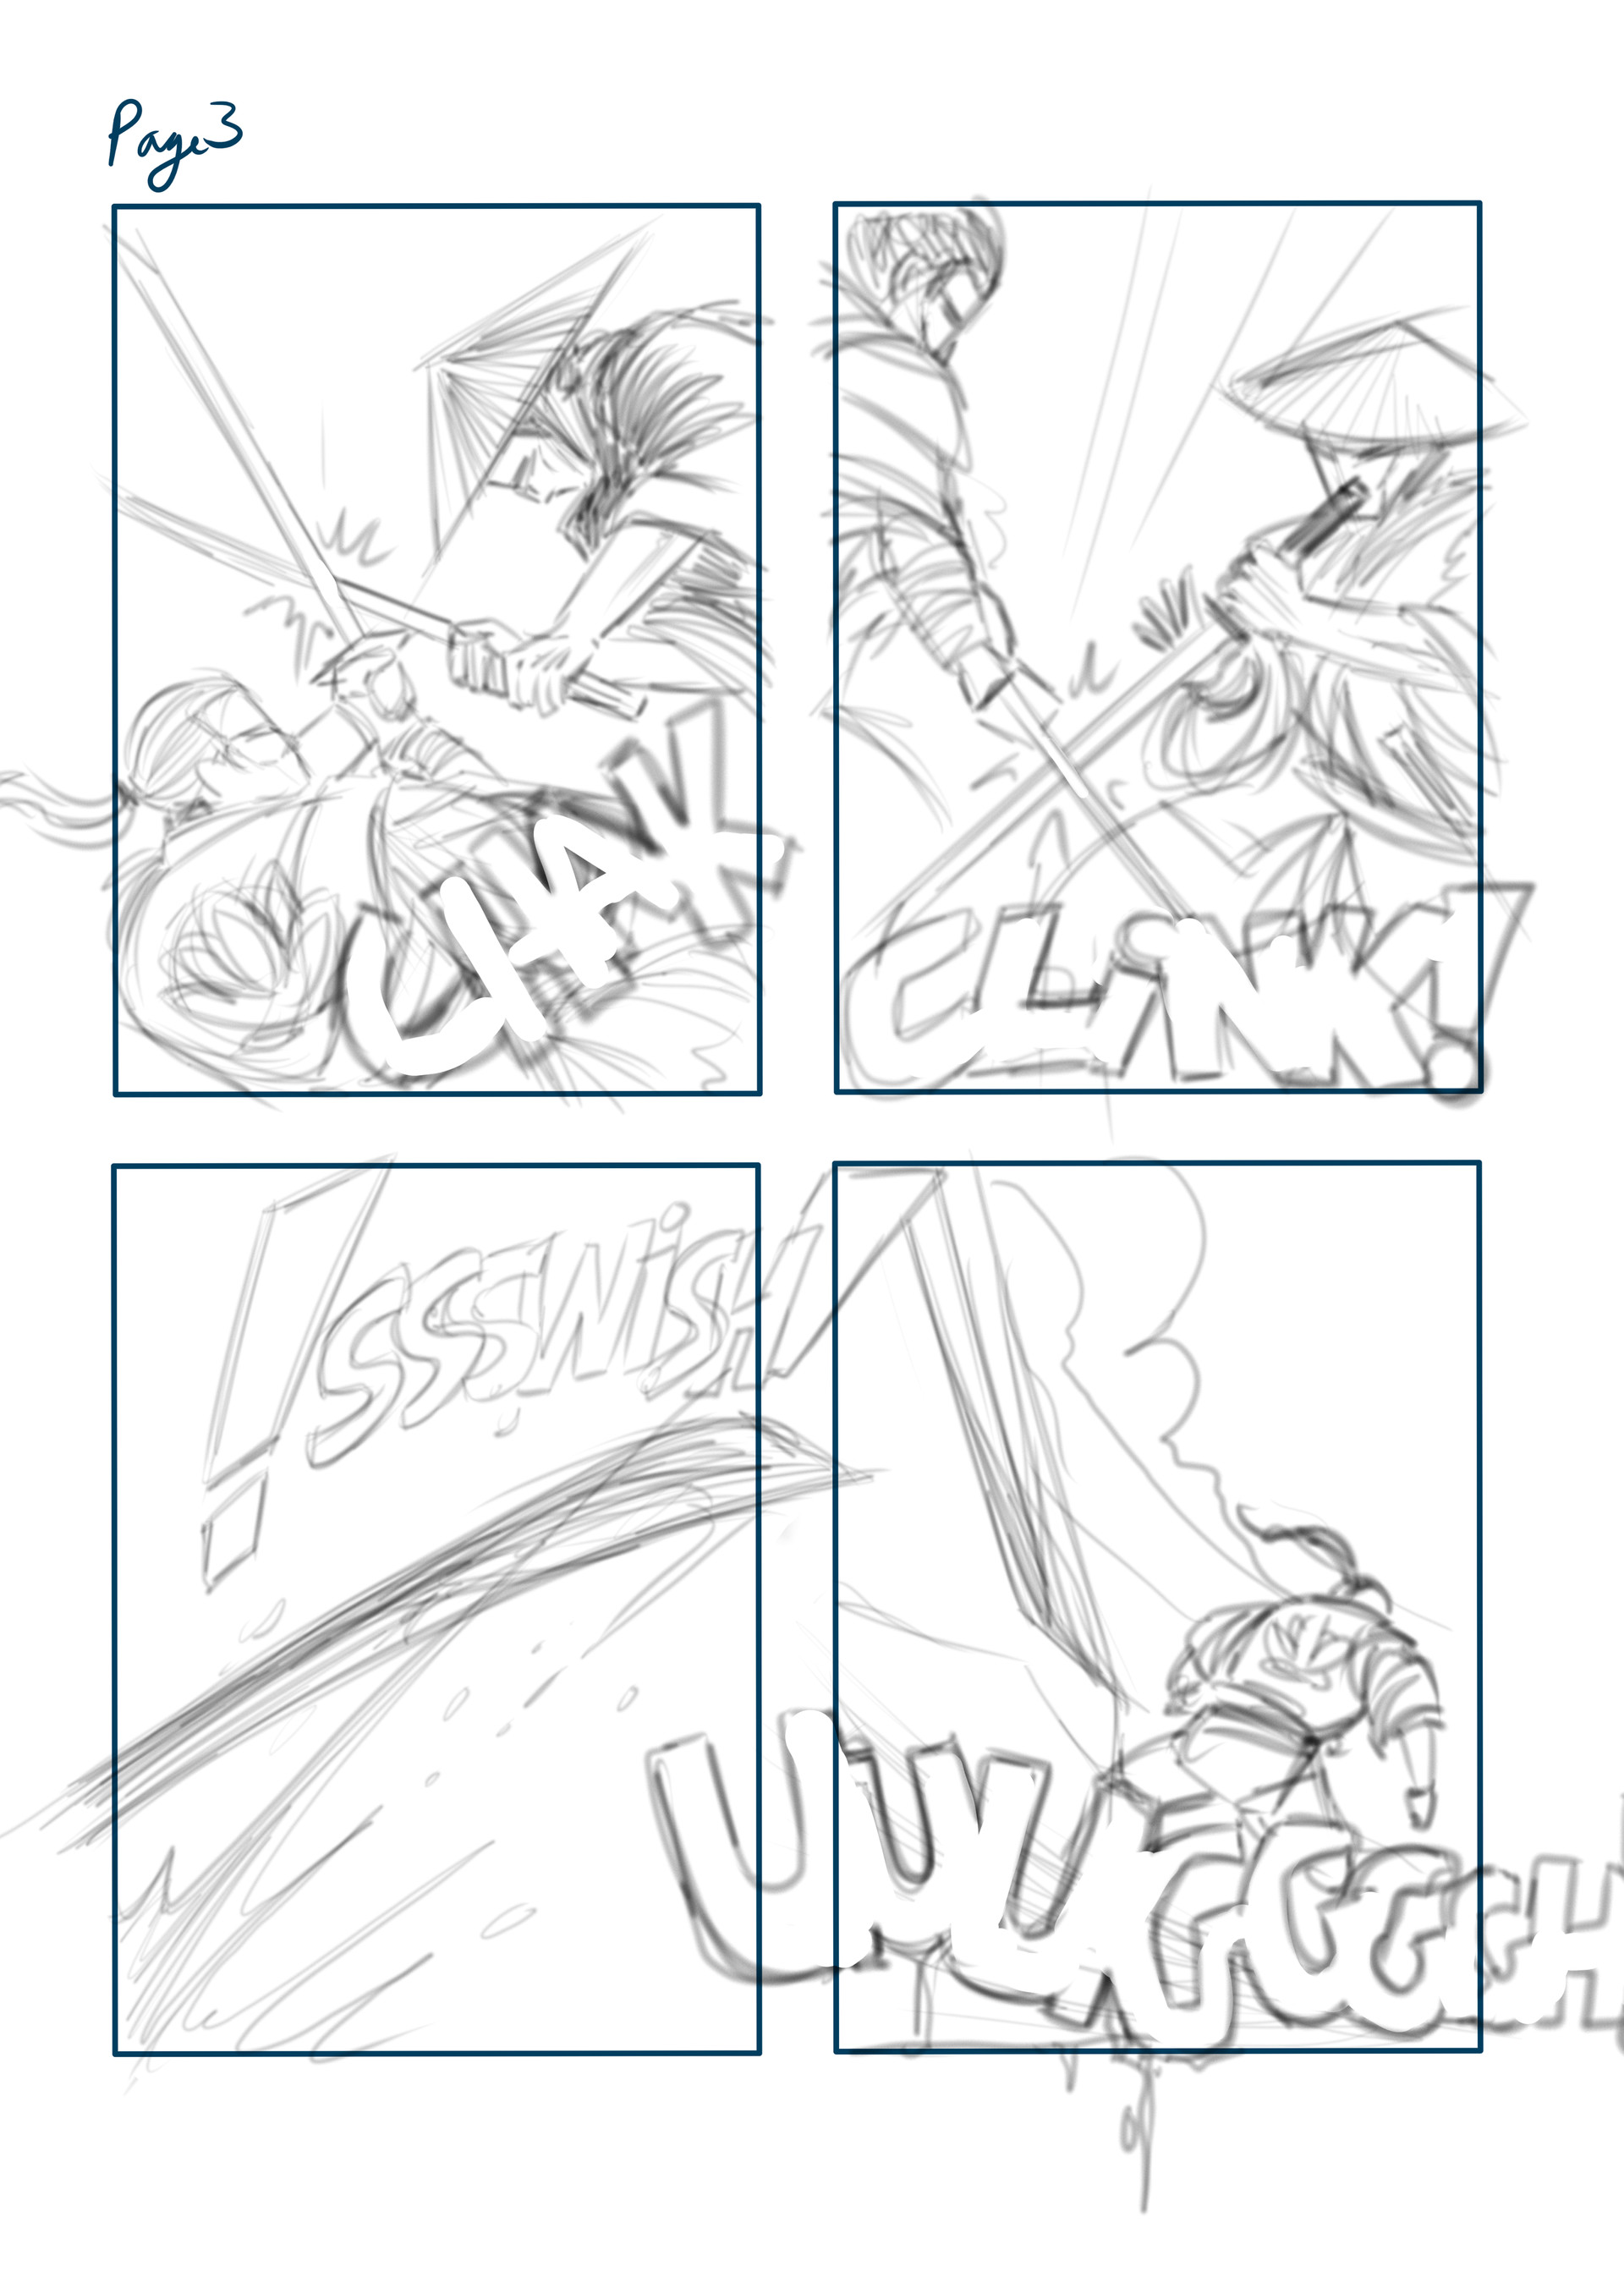 Loc nguyen mini comics page 3pencil